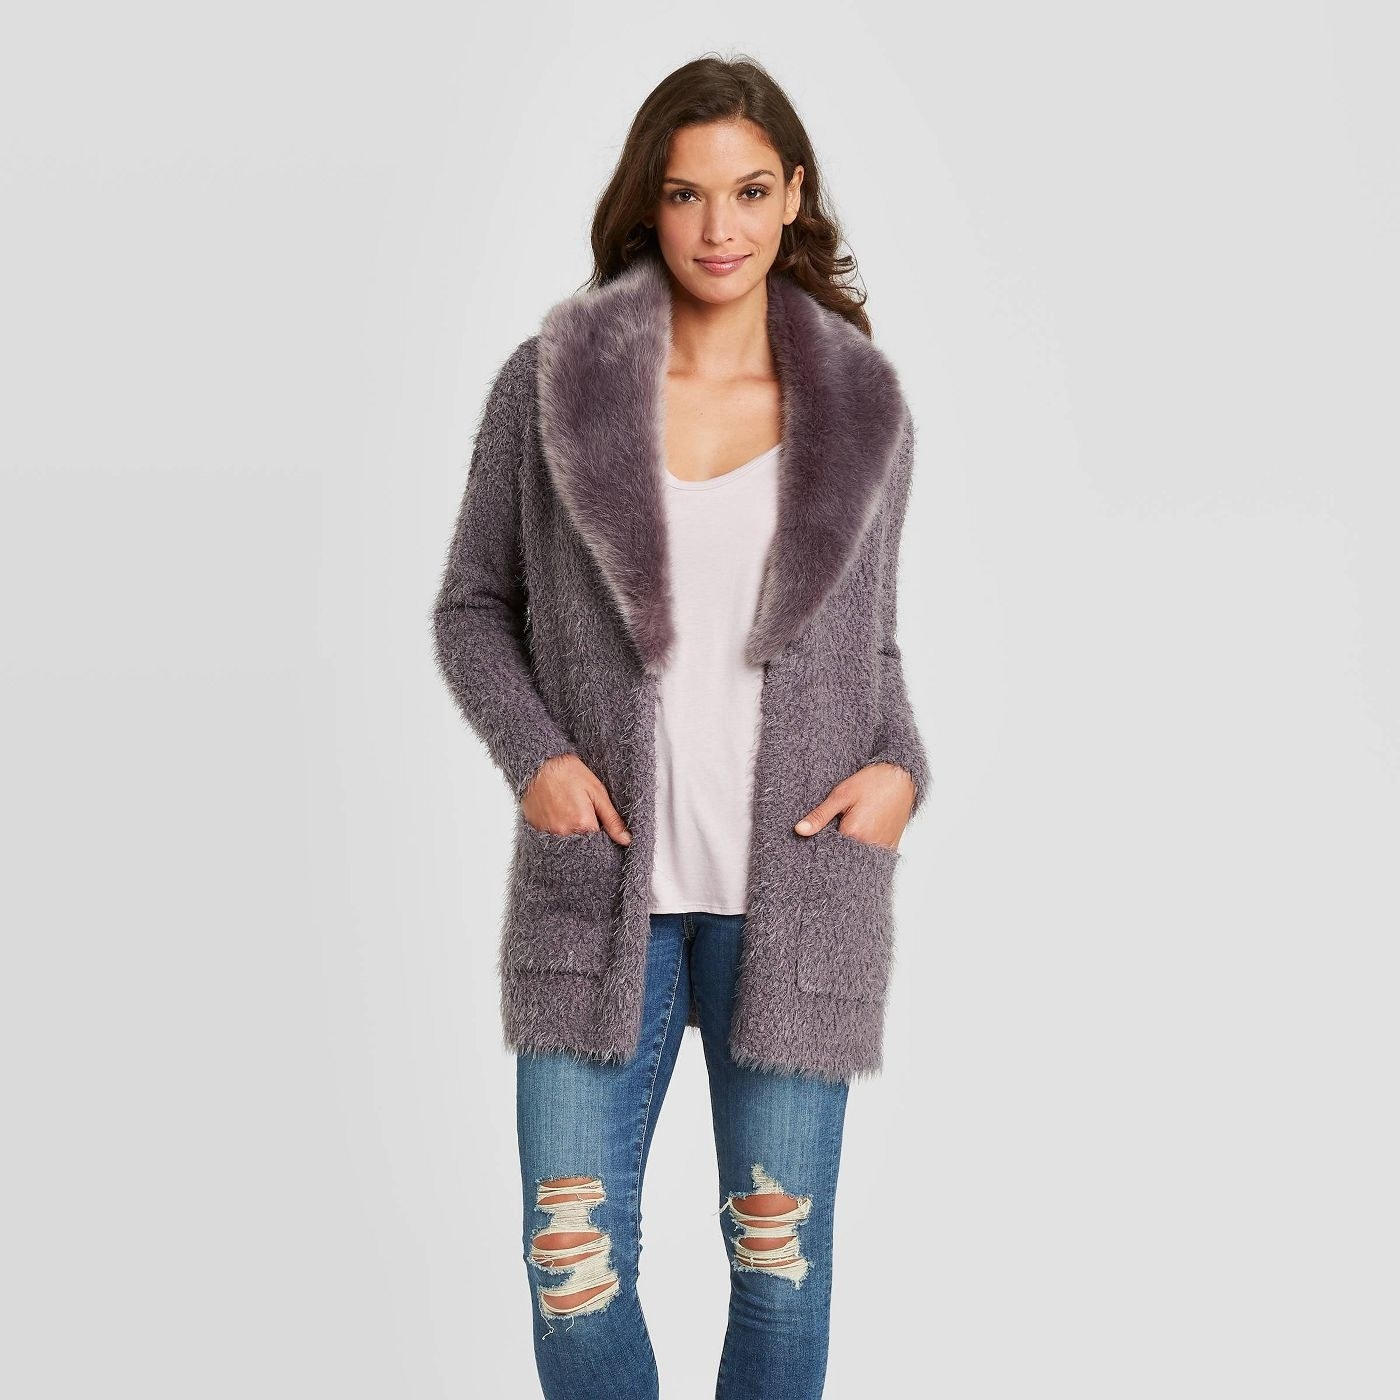 Model in cardigan with removable faux fur collar